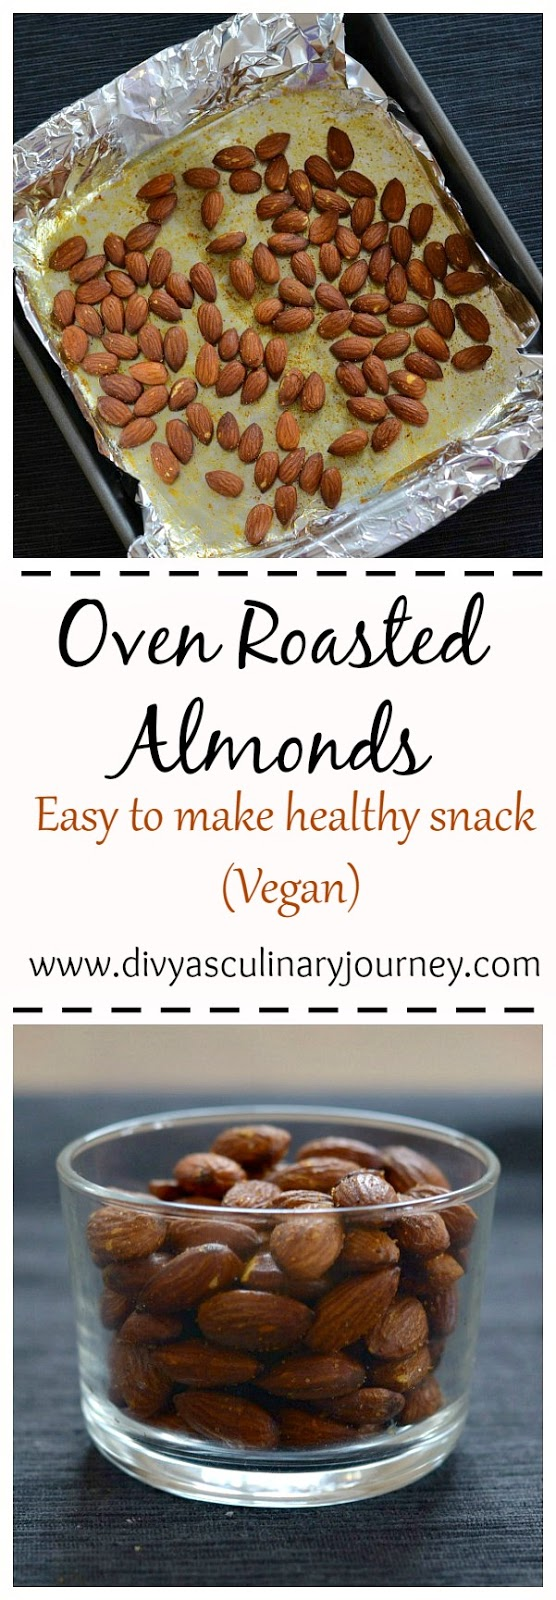 Divya S Culinary Journey Oven Roasted Almonds Roasted